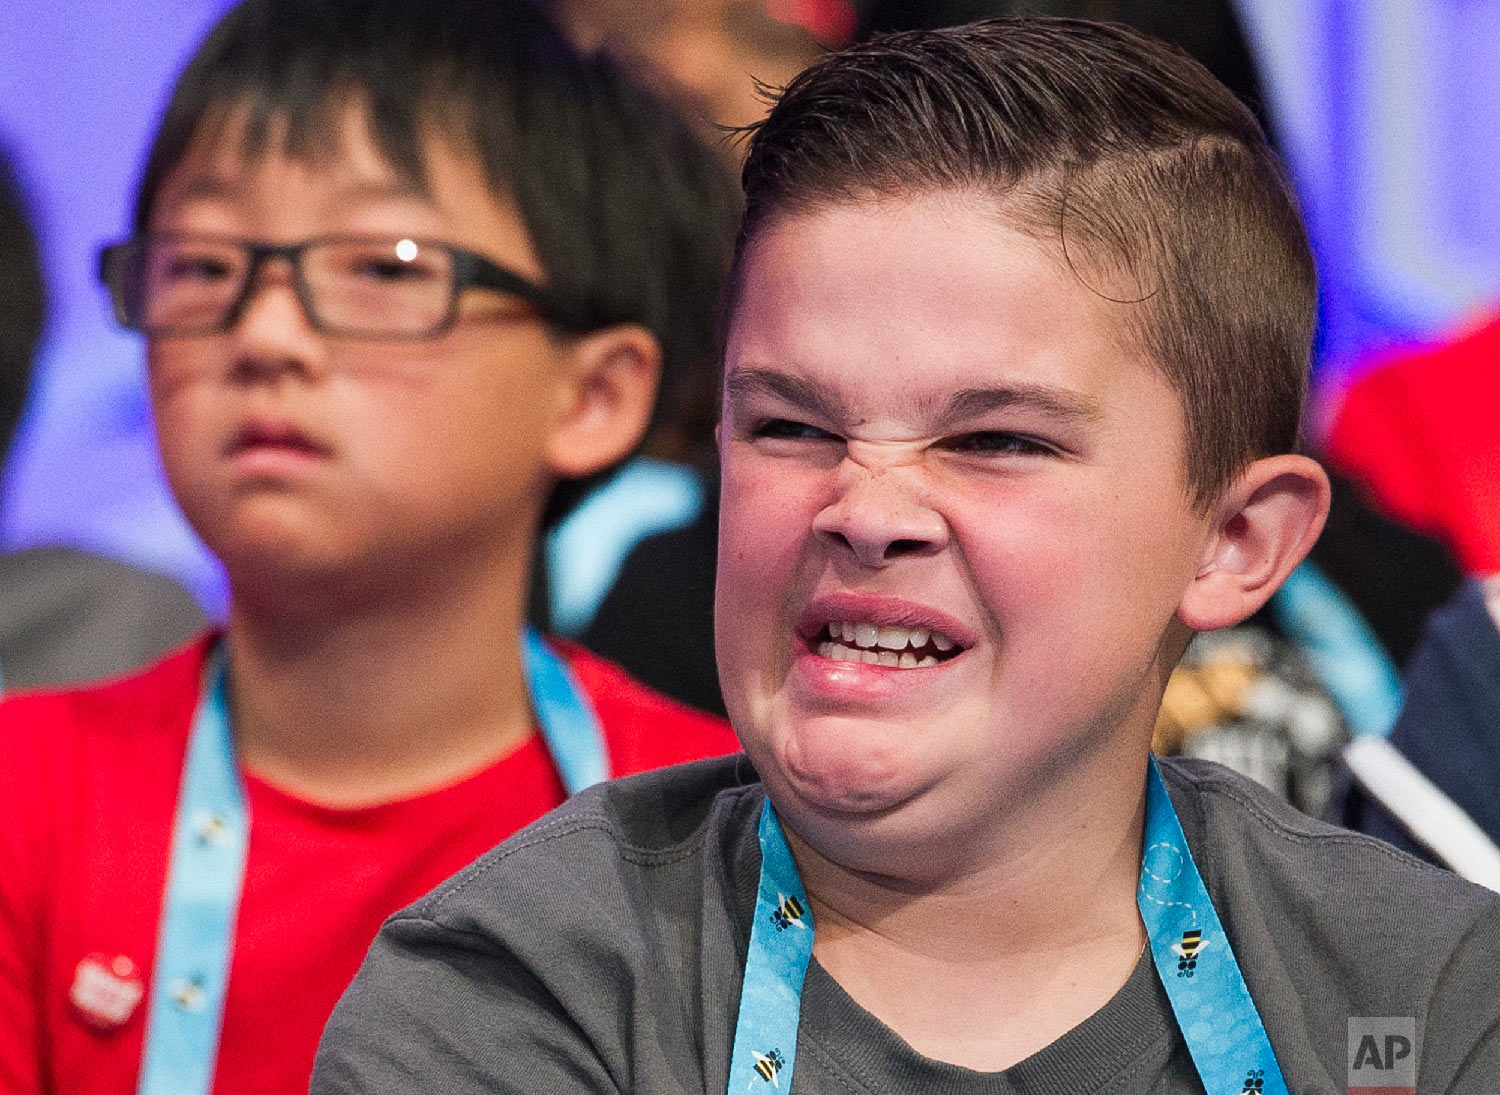 Matthew Rodgers, 13, from Severance, Colo., waits to spell his word during the third round of the Scripps National Spelling Bee in Oxon Hill, Md., Wednesday, May 30, 2018. (AP Photo/Cliff Owen)